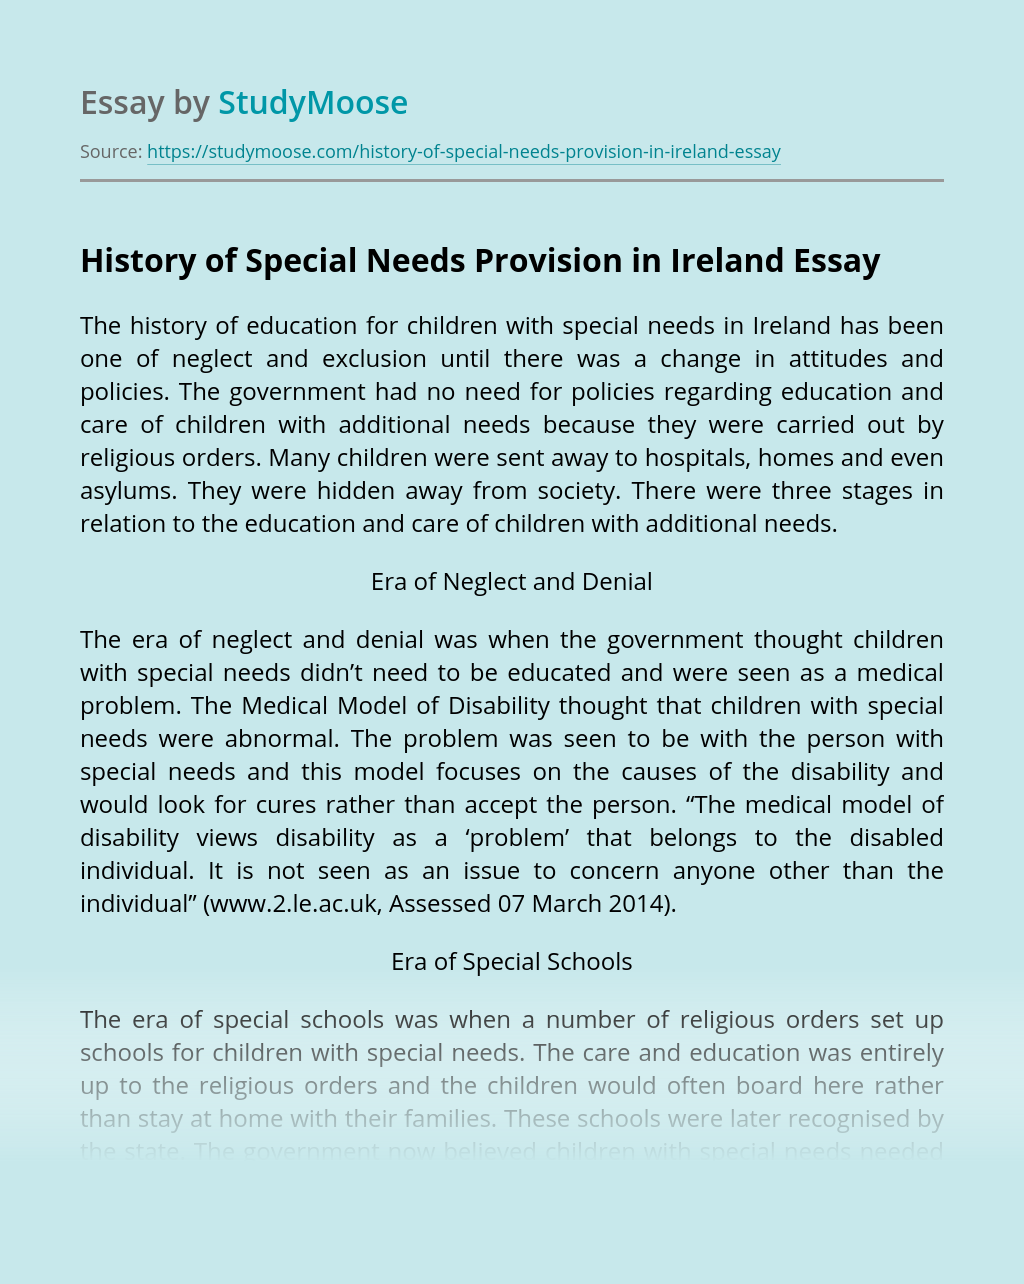 History of Special Needs Provision in Ireland